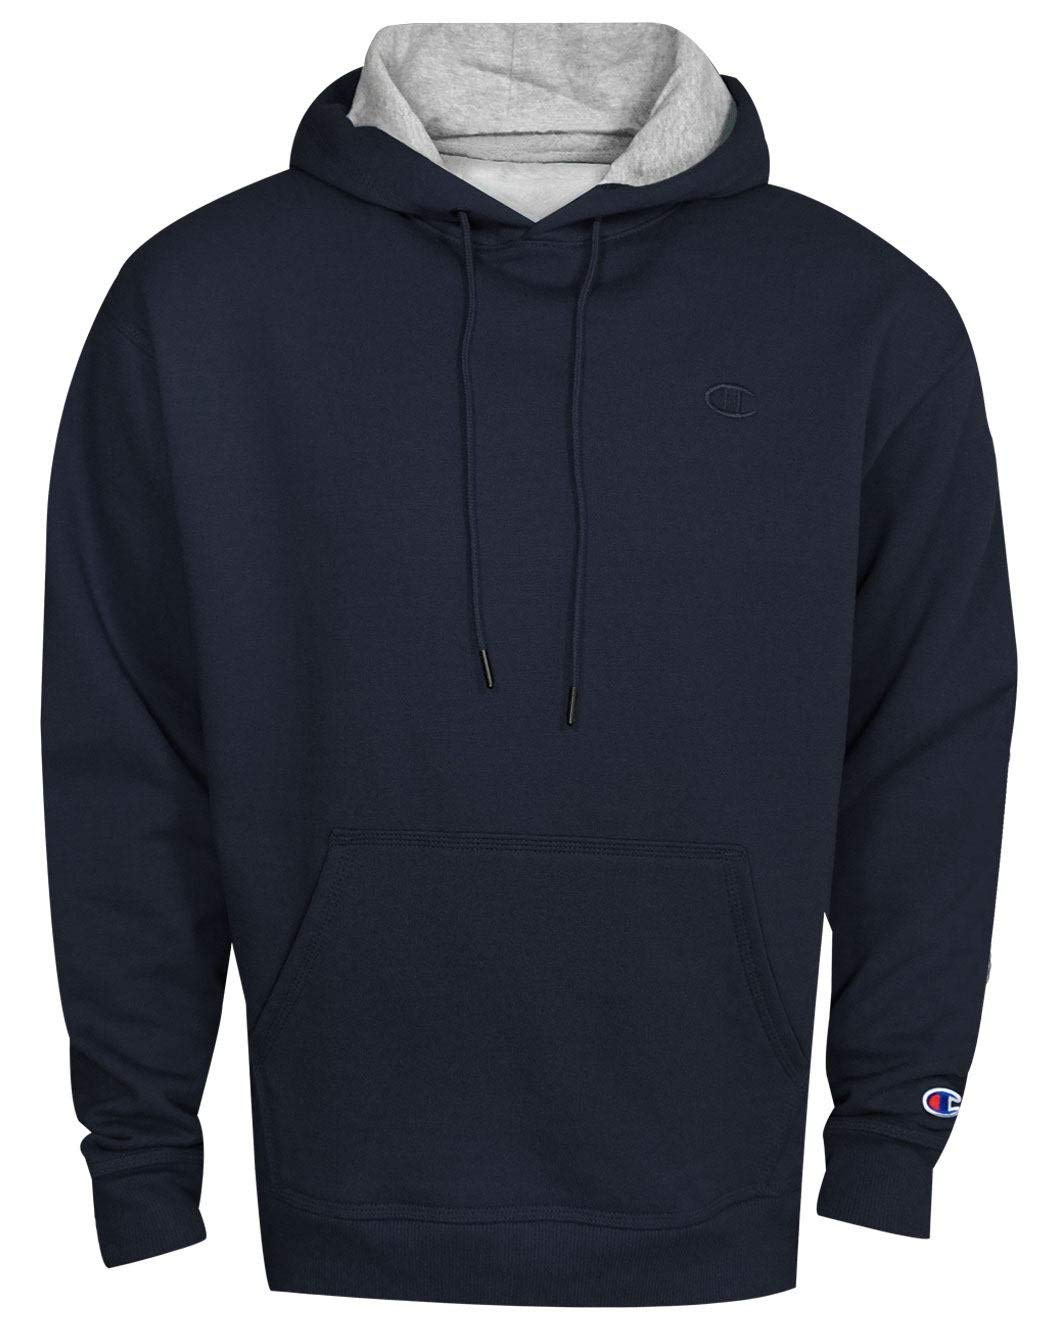 Champion Men's Powerblend Pullover Hoodie, Navy, Small by Champion